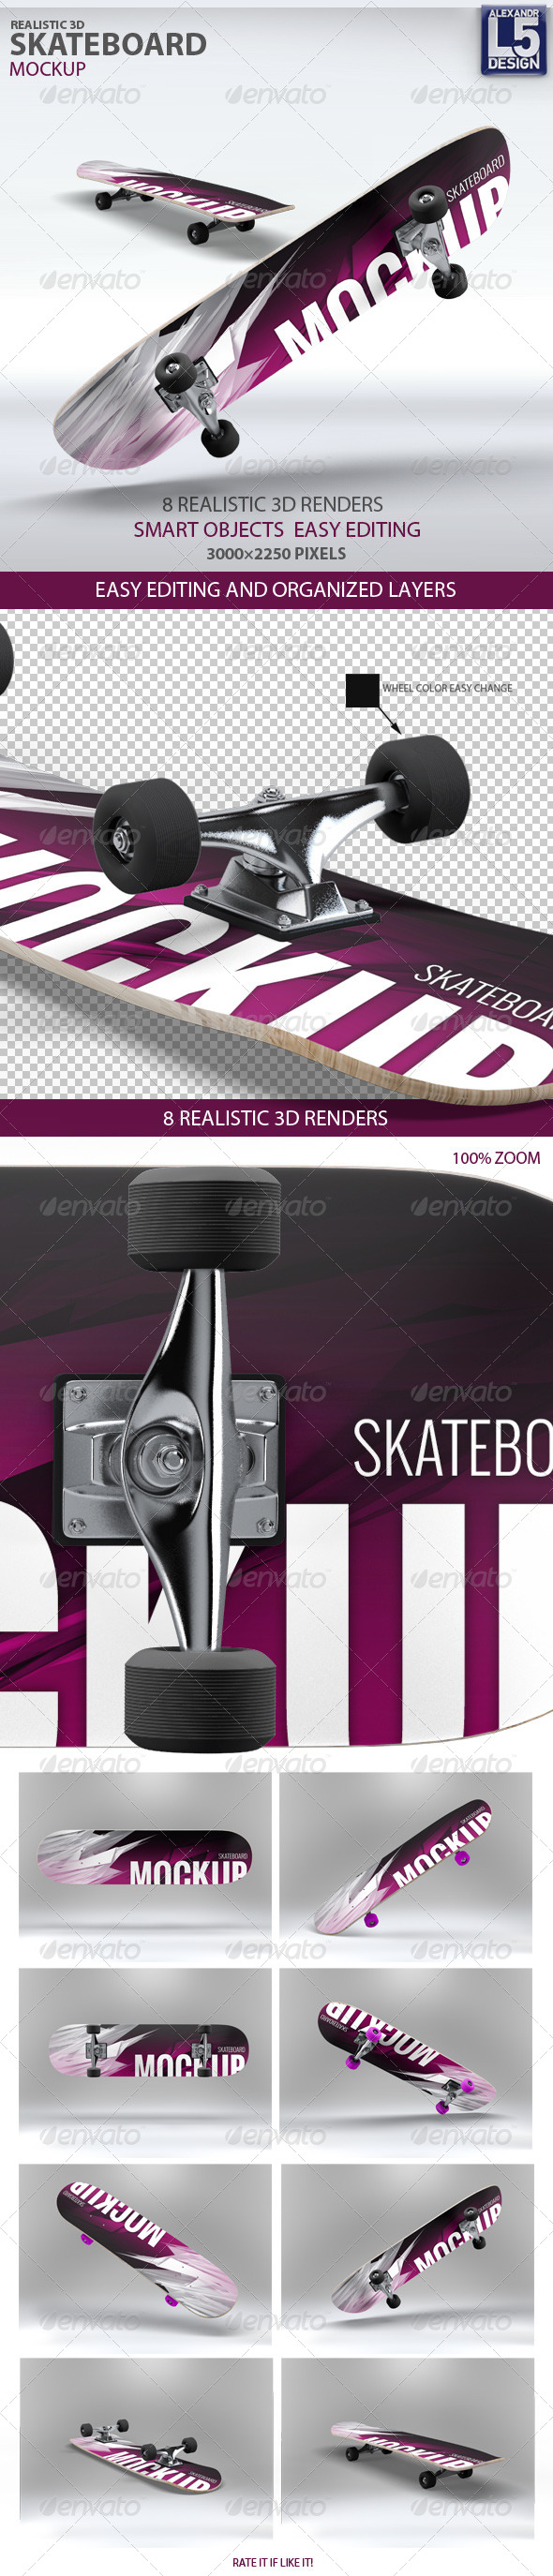 GraphicRiver Skateboard Mock-Up 8193198